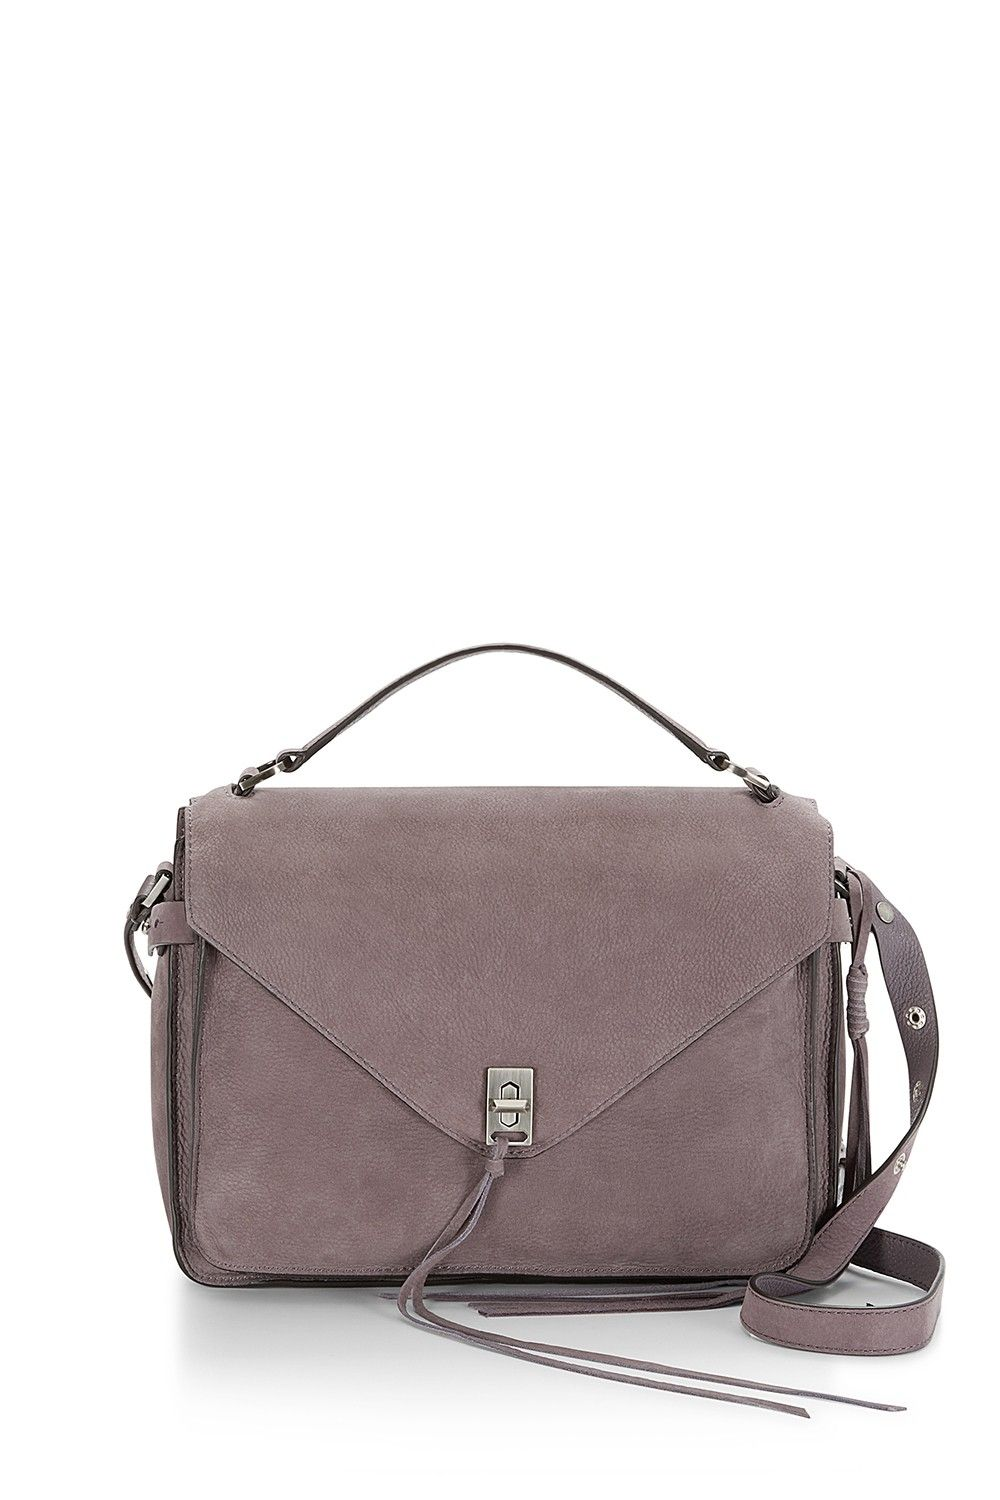 Darren Messenger Satchel - Ladylike gets some downtown cred. This bag has a flap that clicks shut, a front pocket for quick phone access, and strap options for toting or shouldering all decked out in supple, keeps-getting-better leather. 325.00 PALE LAVENDER